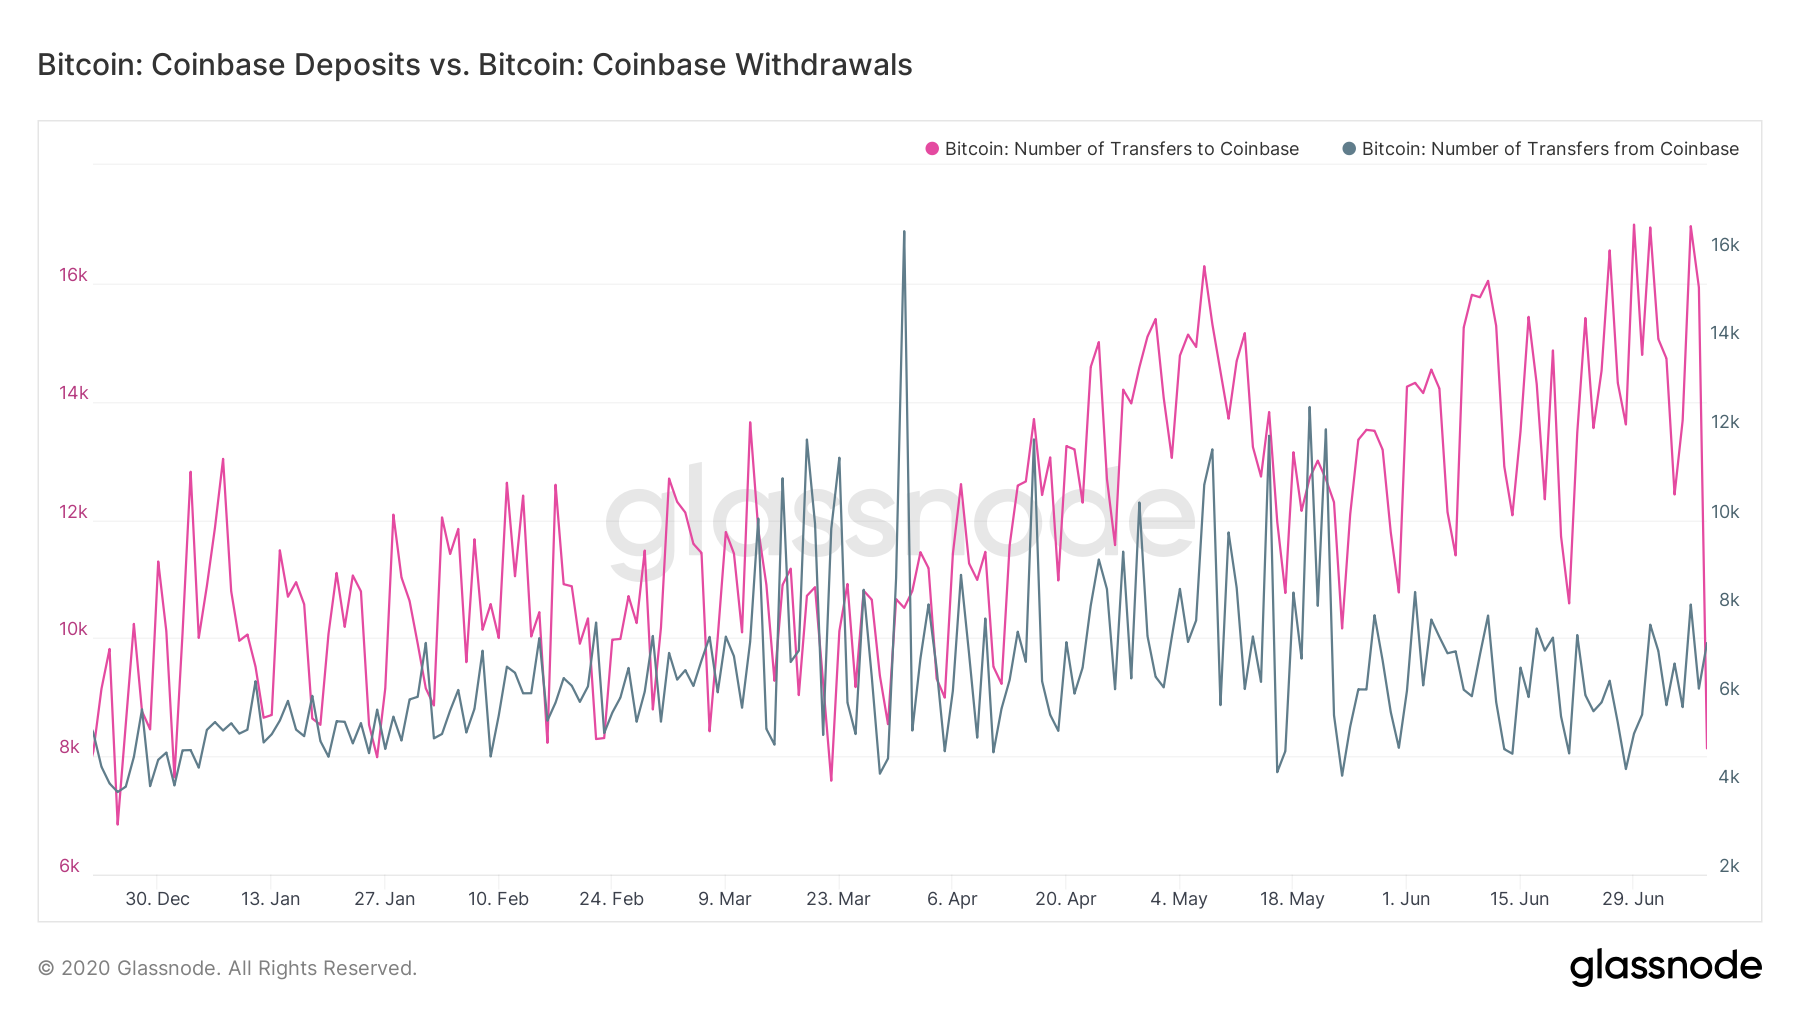 Coinbase: Number of Bitcoin deposits & withdrawals. Source: Glassnode